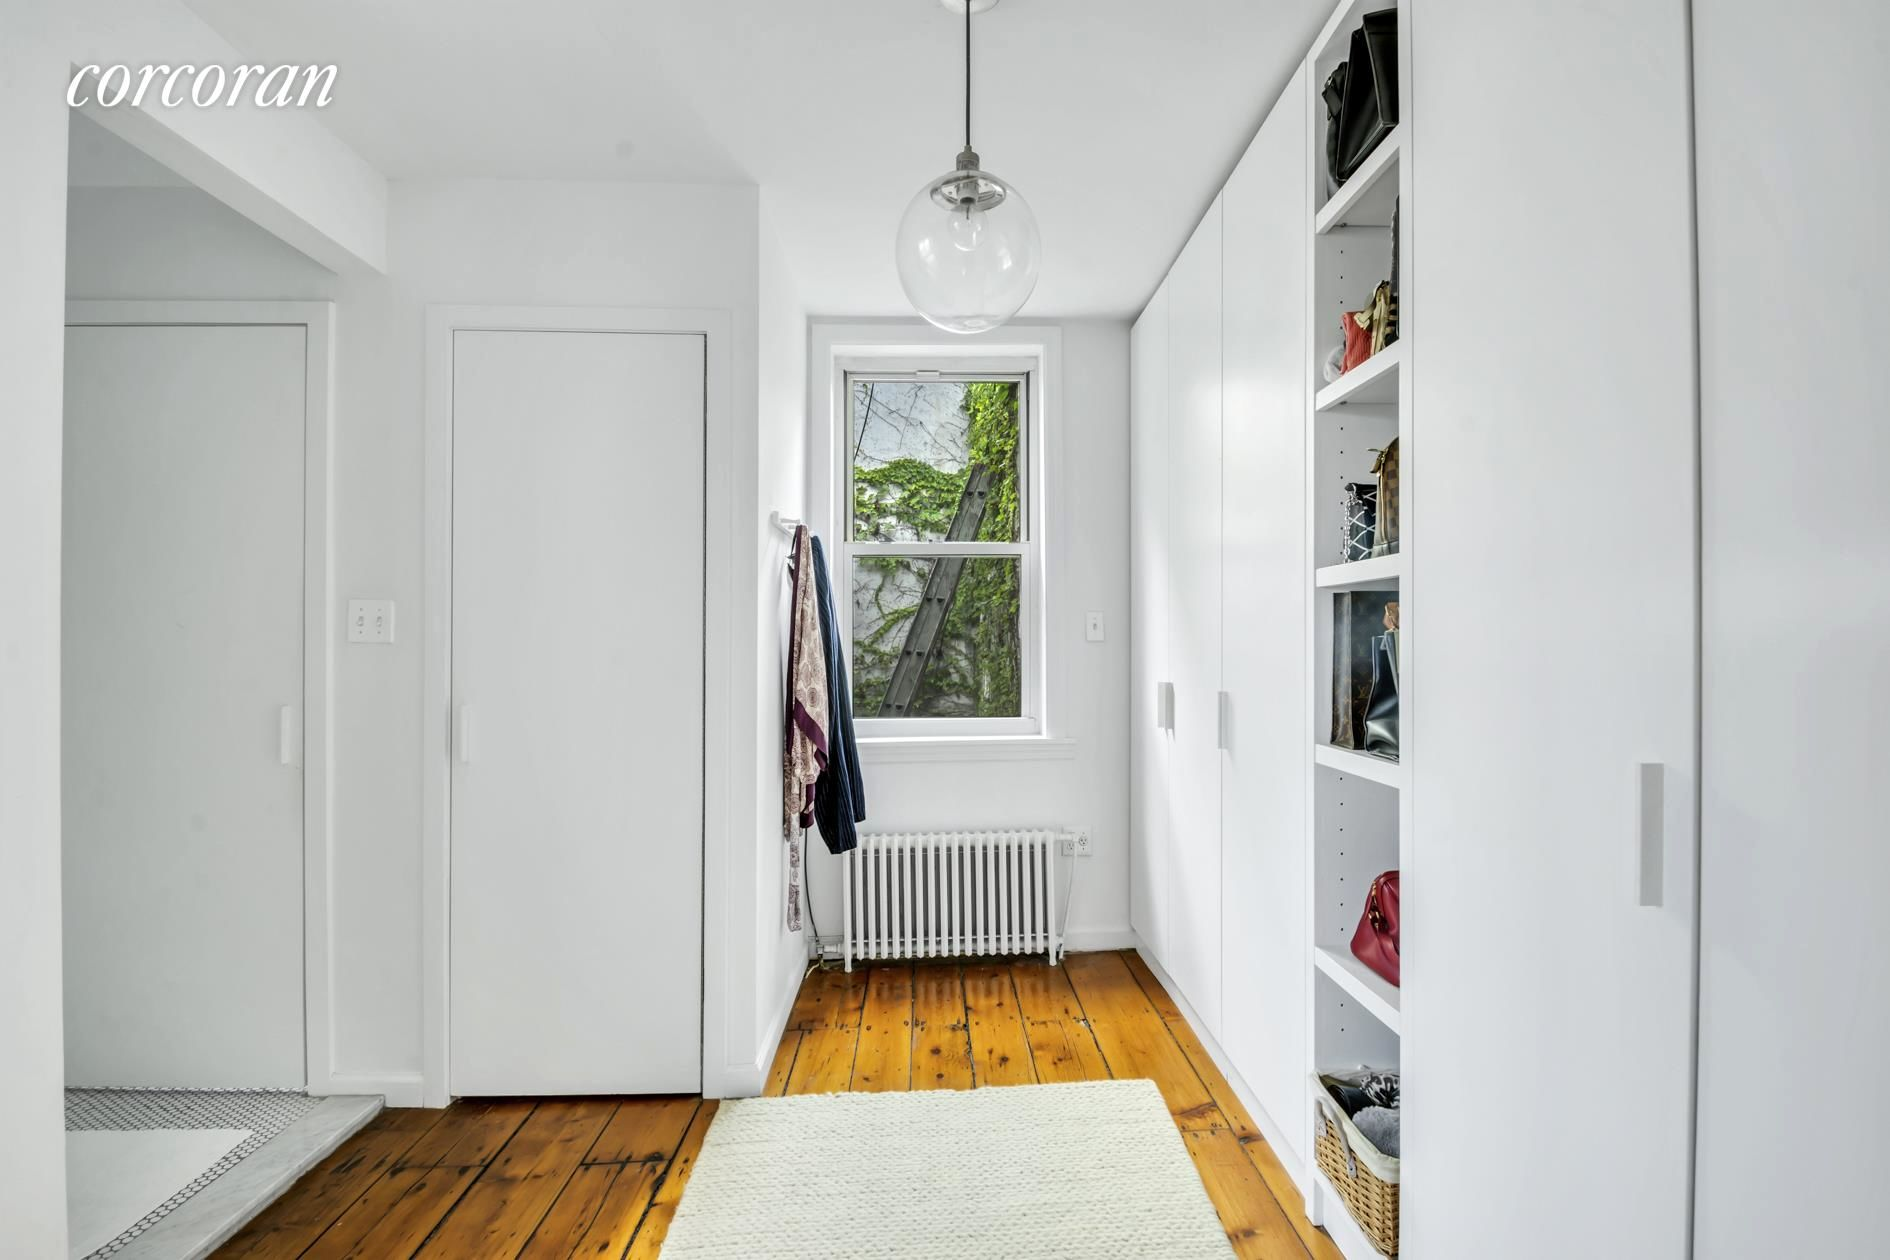 561 Union St Photo 4 - NYC-Real-Estate-668587